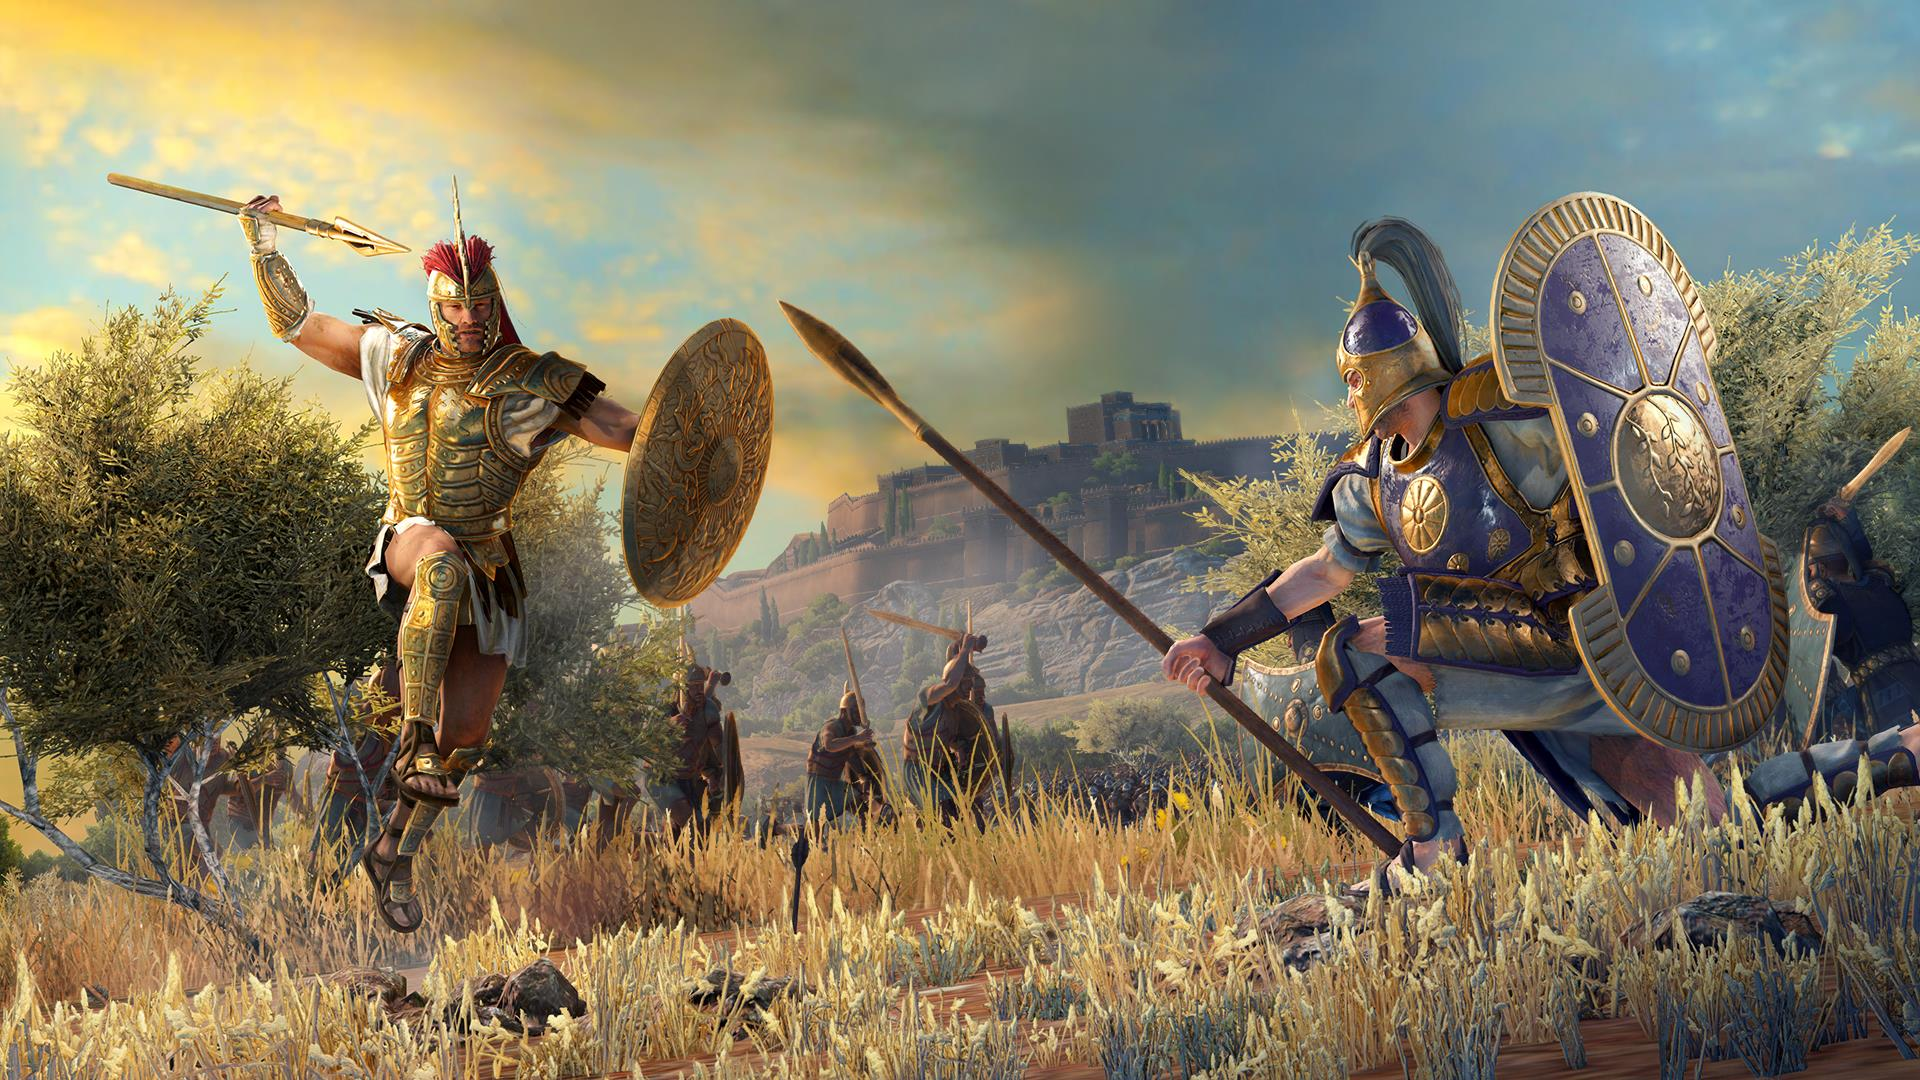 A Total War Saga: Troy claimed by 7.5 million players in 24 hours thumbnail